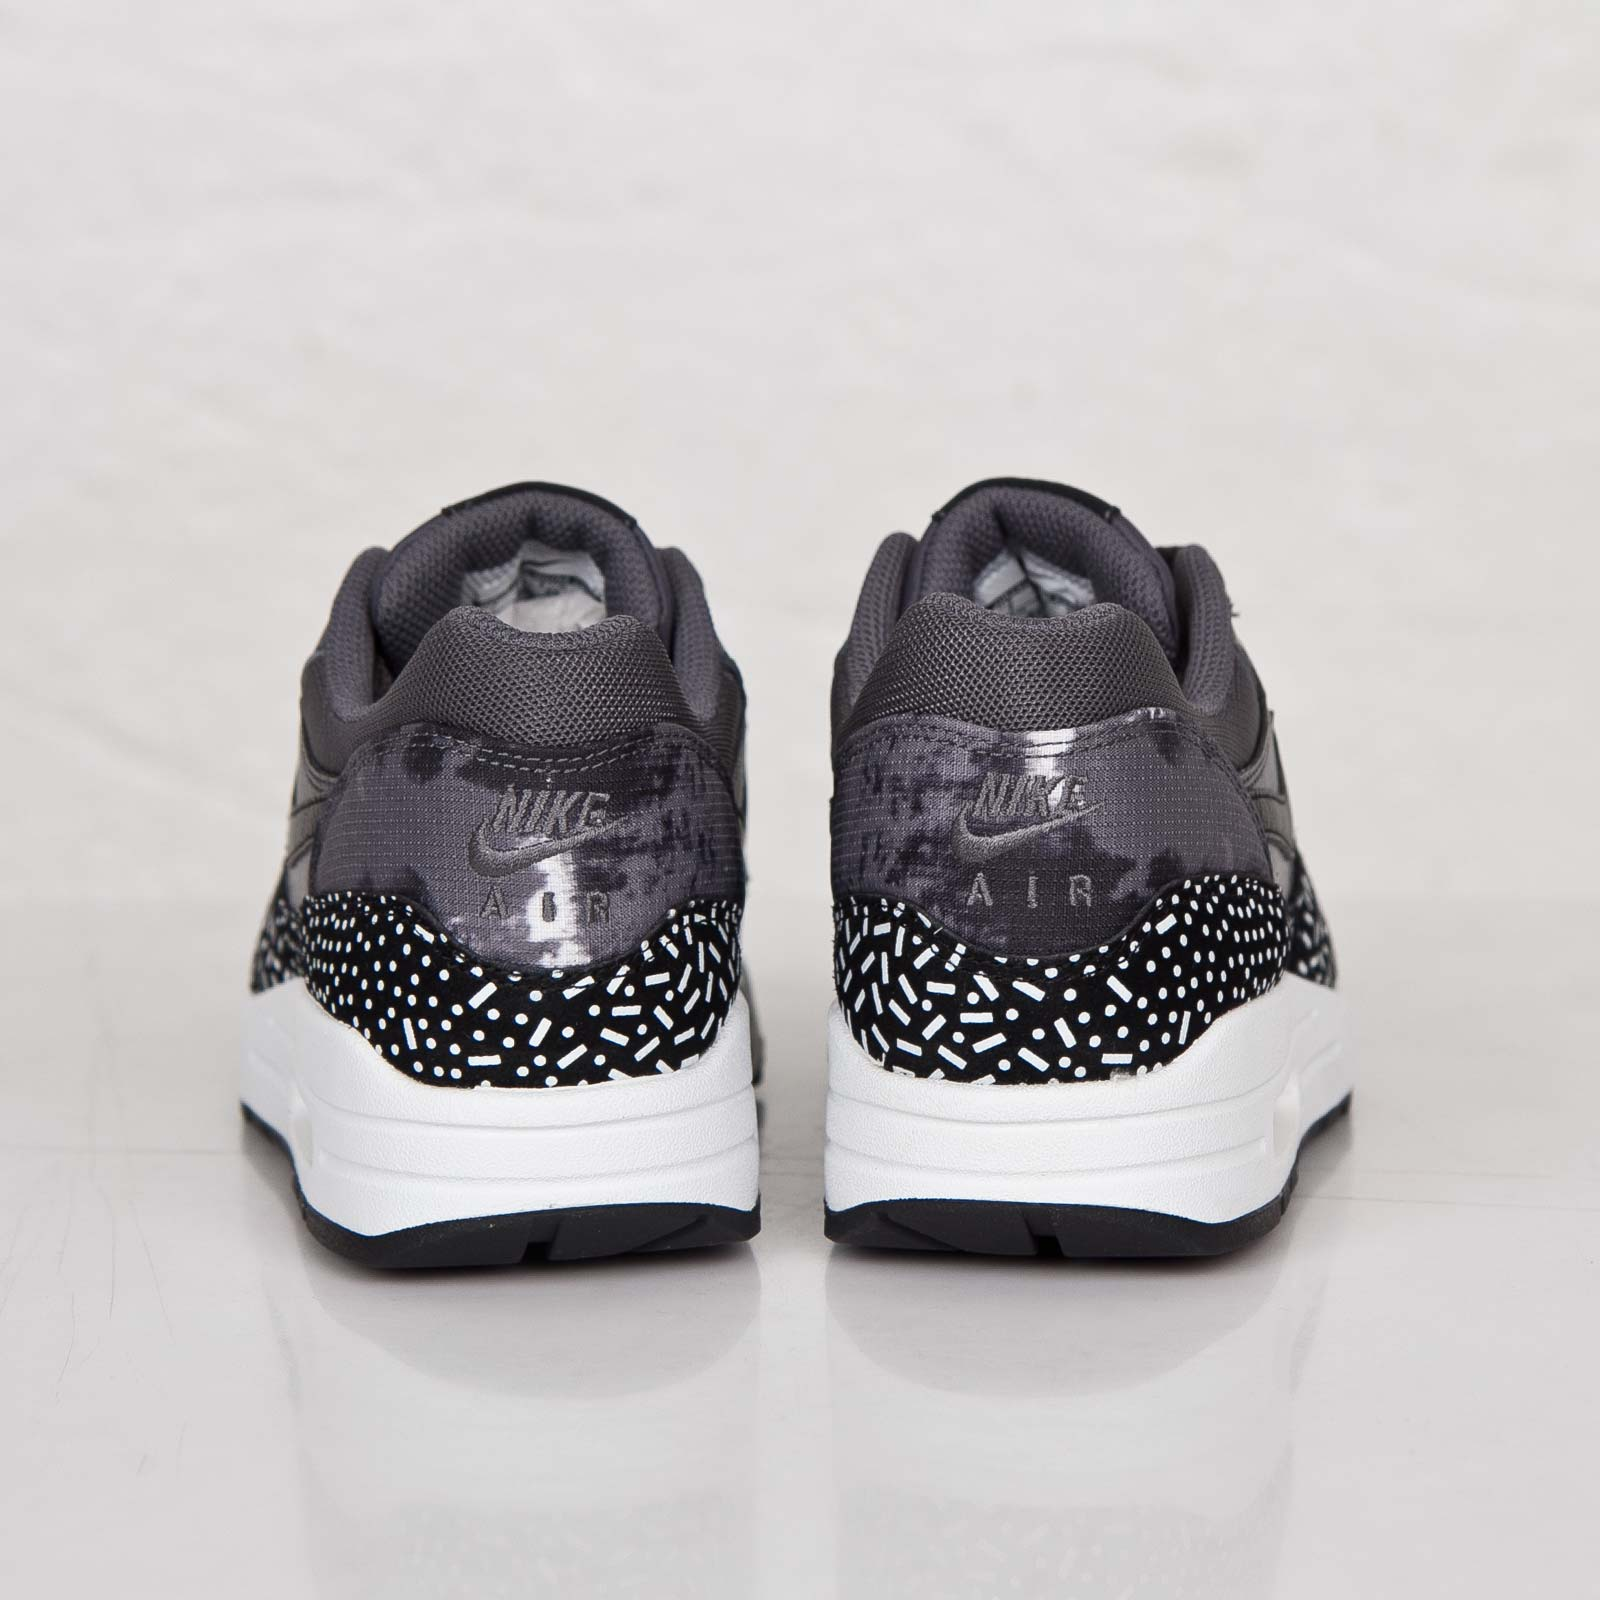 Nike Air Max 1 Print, Women's Low Top Sneakers